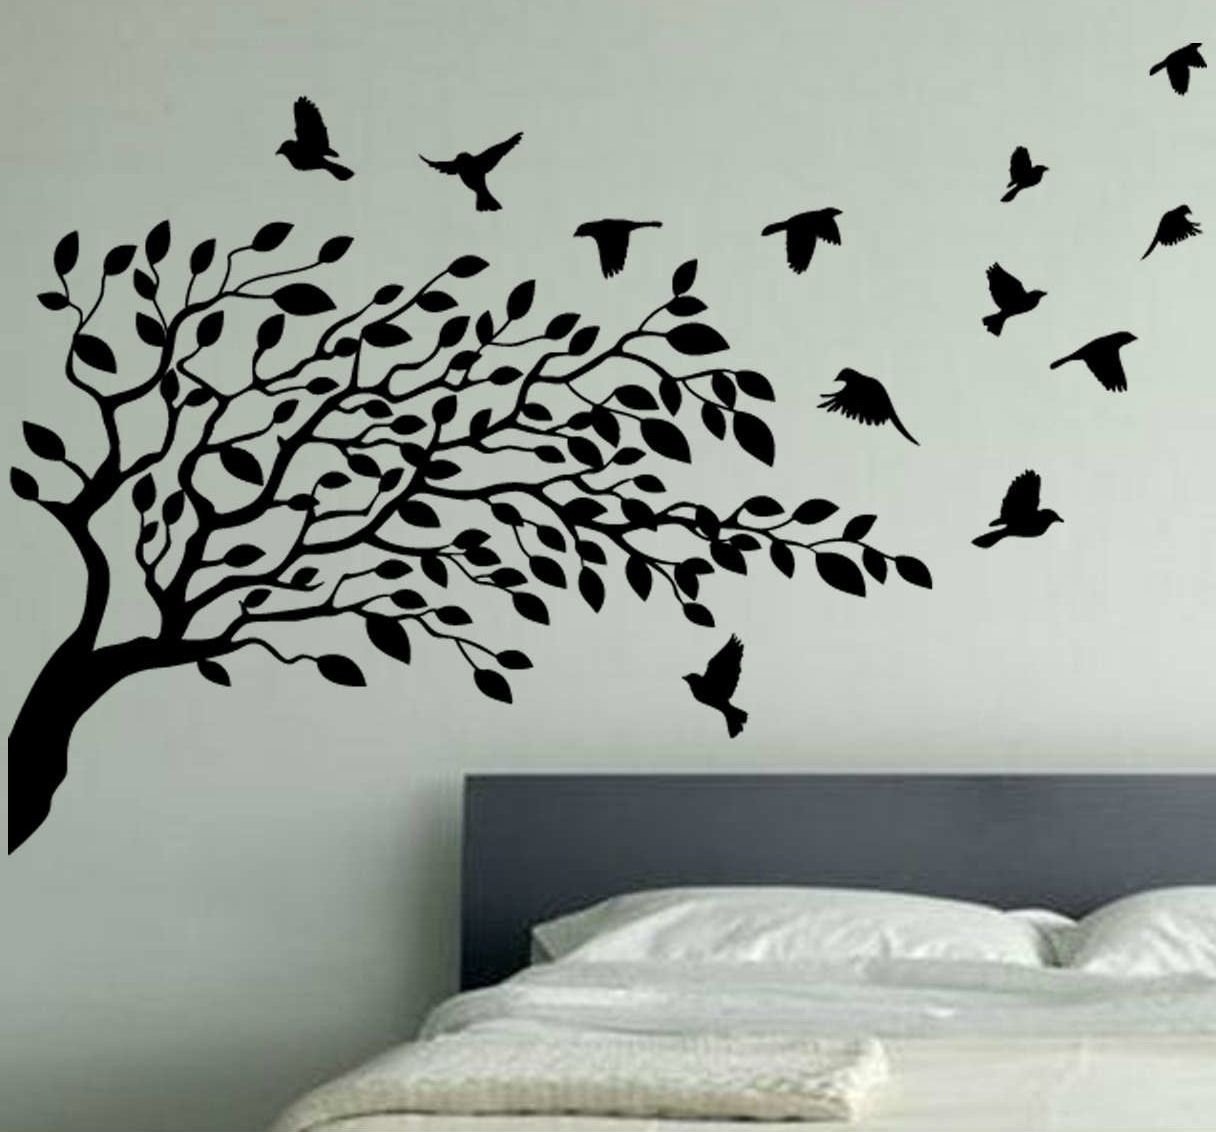 Wallpaper wall decals stickers art vinyl removable birdcage bird wallpaper wall decals stickers art vinyl removable birdcage bird tree bird wallpaper stickers amipublicfo Images